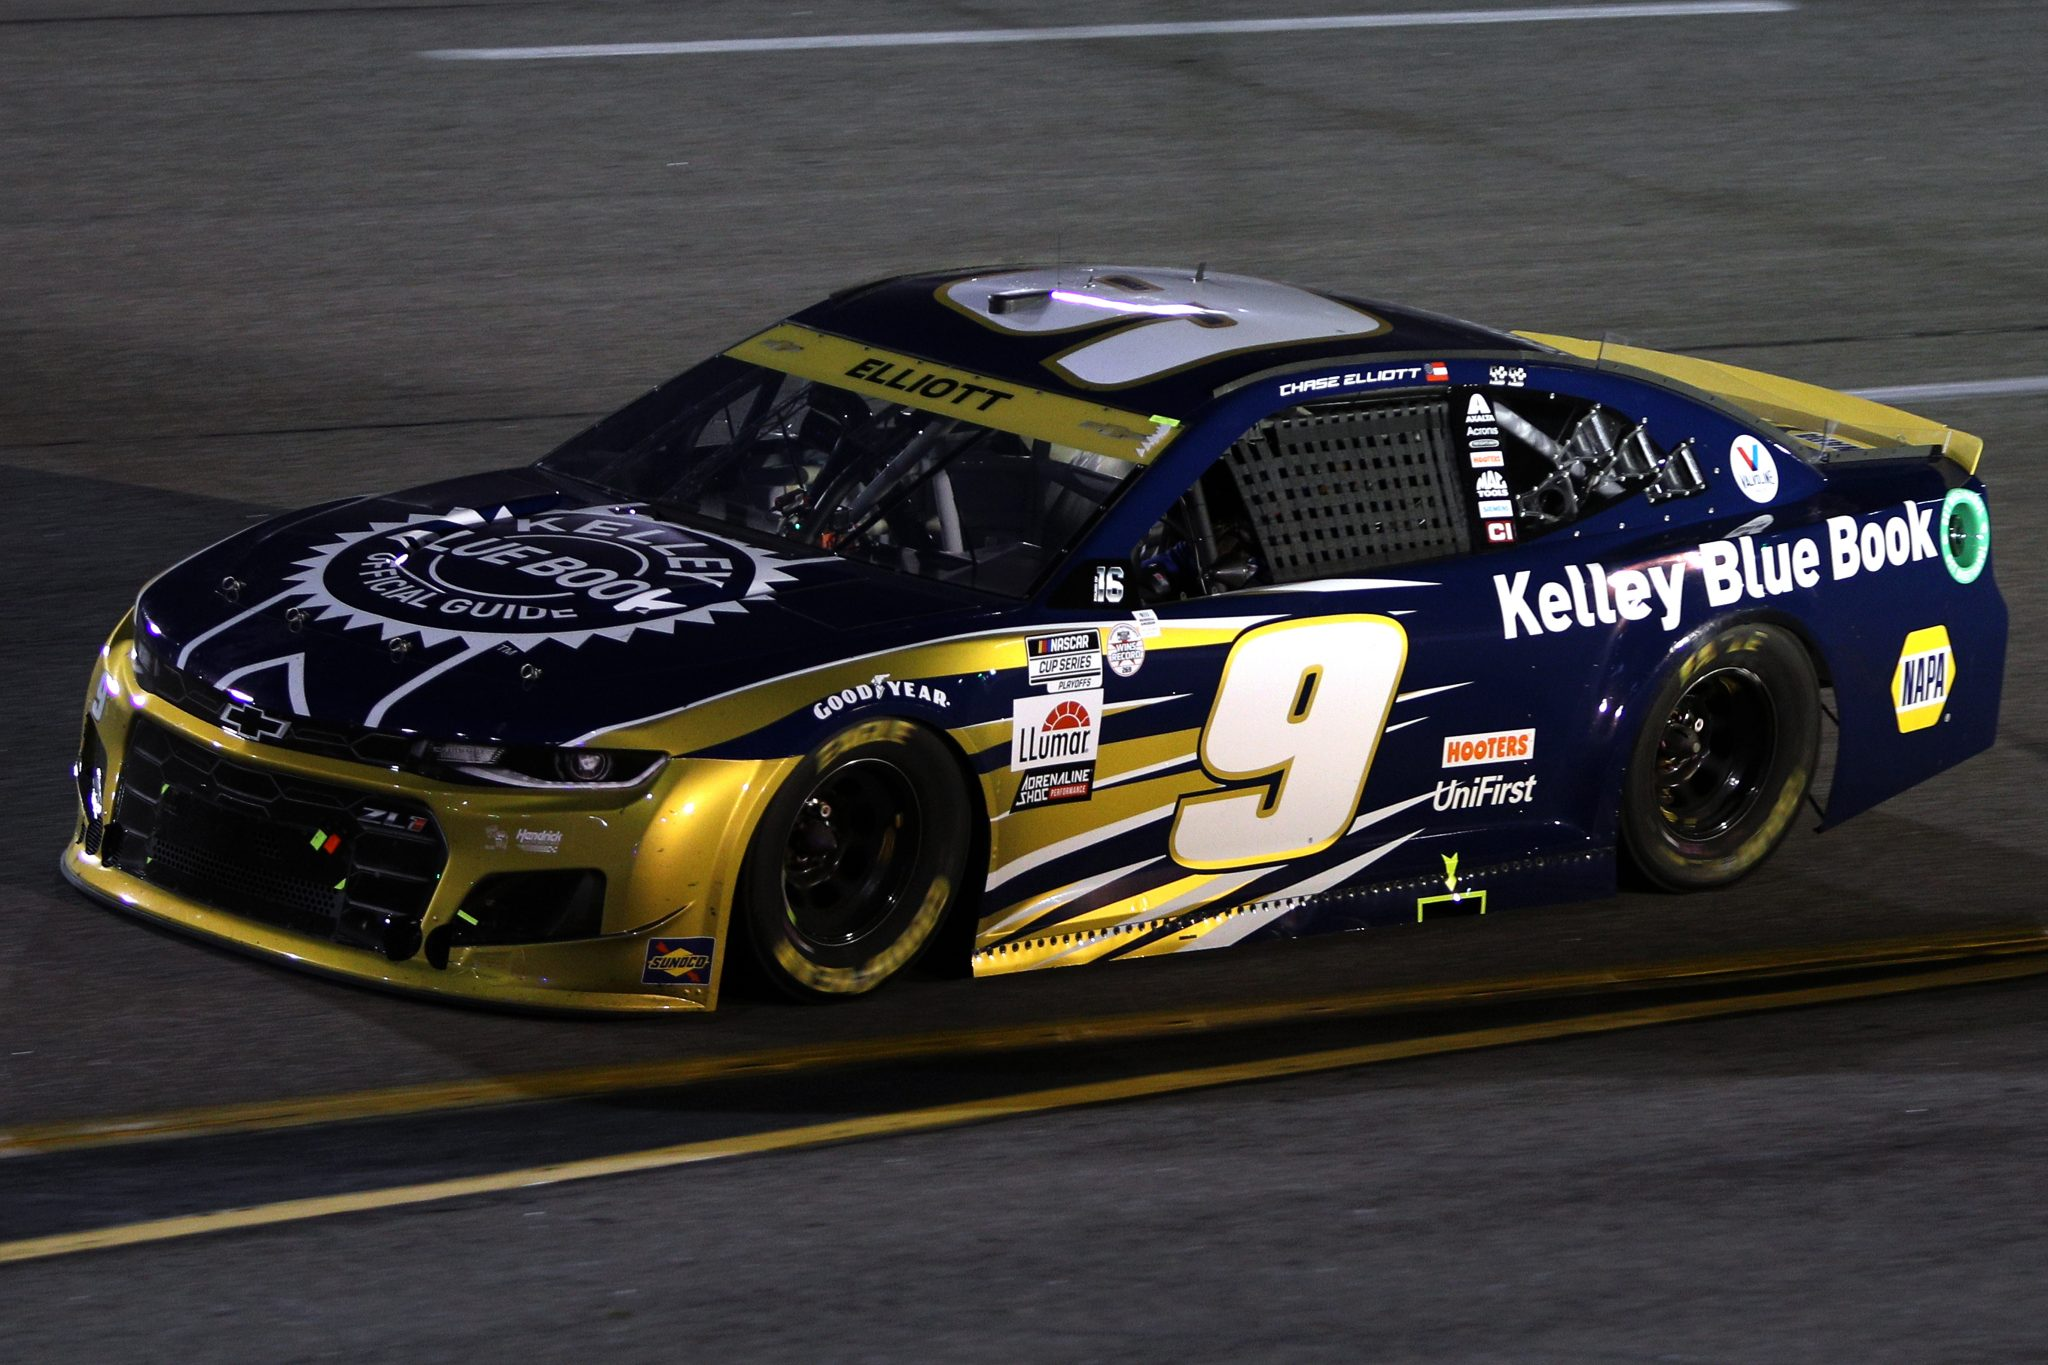 RICHMOND, VIRGINIA - SEPTEMBER 11: Chase Elliott, driver of the #9 Kelley Blue Book Chevrolet, drives during the NASCAR Cup Series Federated Auto Parts 400 Salute to First Responders at Richmond Raceway on September 11, 2021 in Richmond, Virginia. (Photo by Sean Gardner/Getty Images)   Getty Images